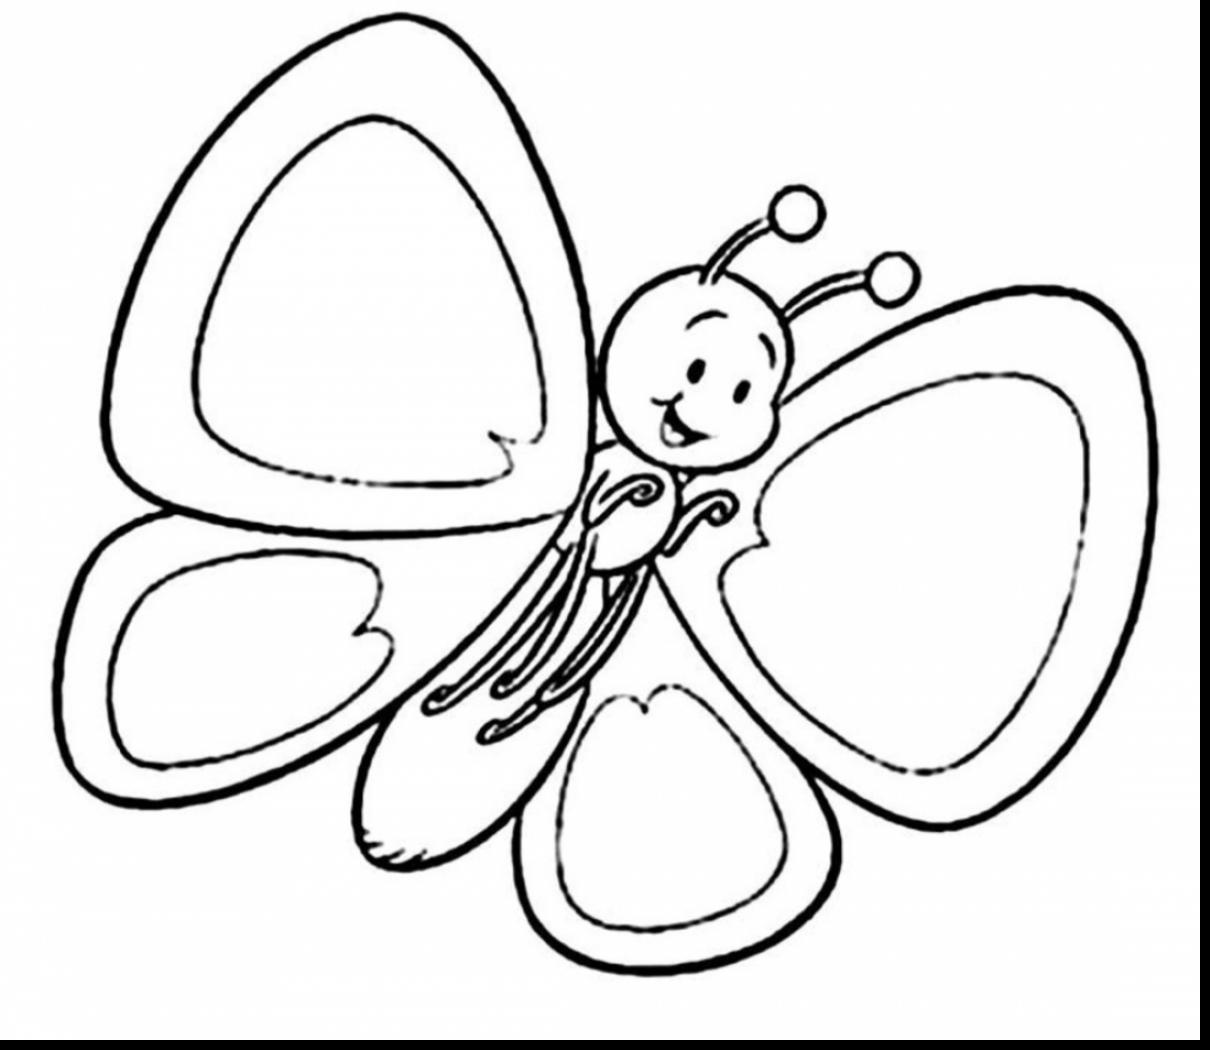 1210x1050 Spring Coloring Pages For Toddlers